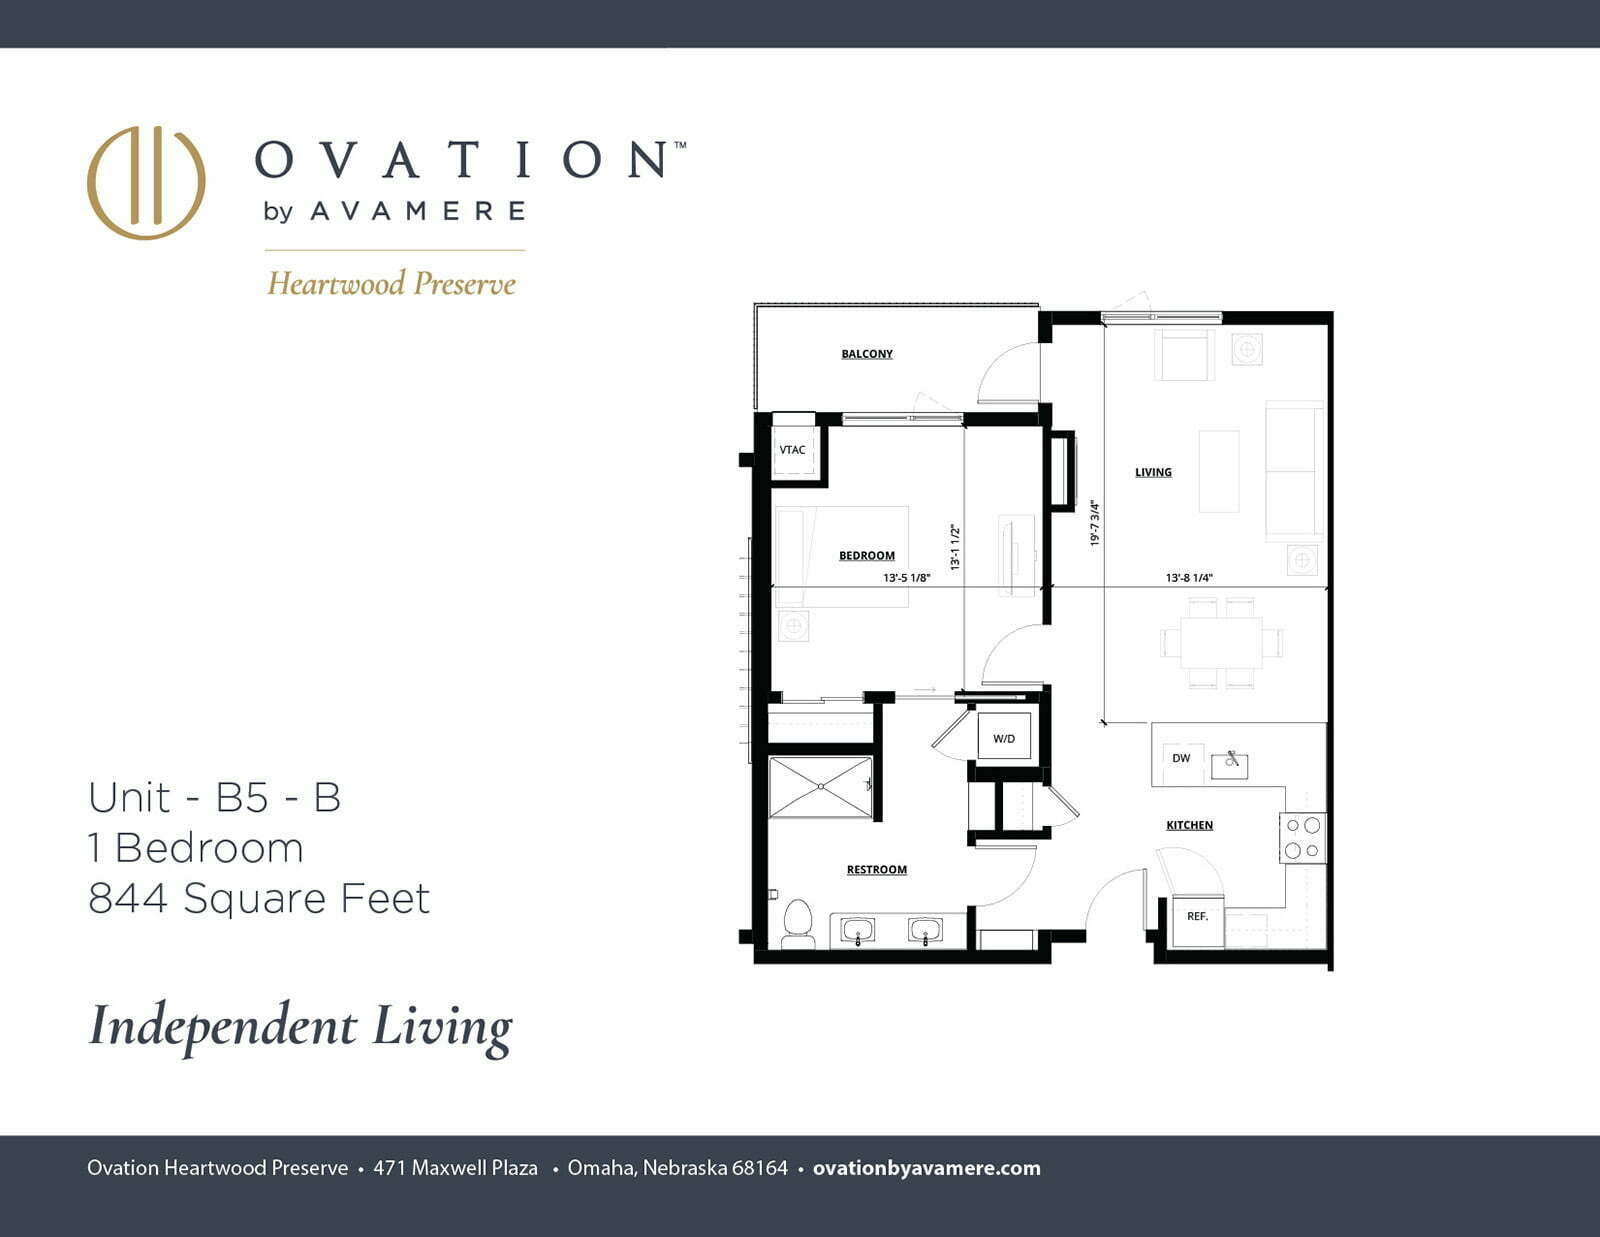 Independent Living | Room B5 - B